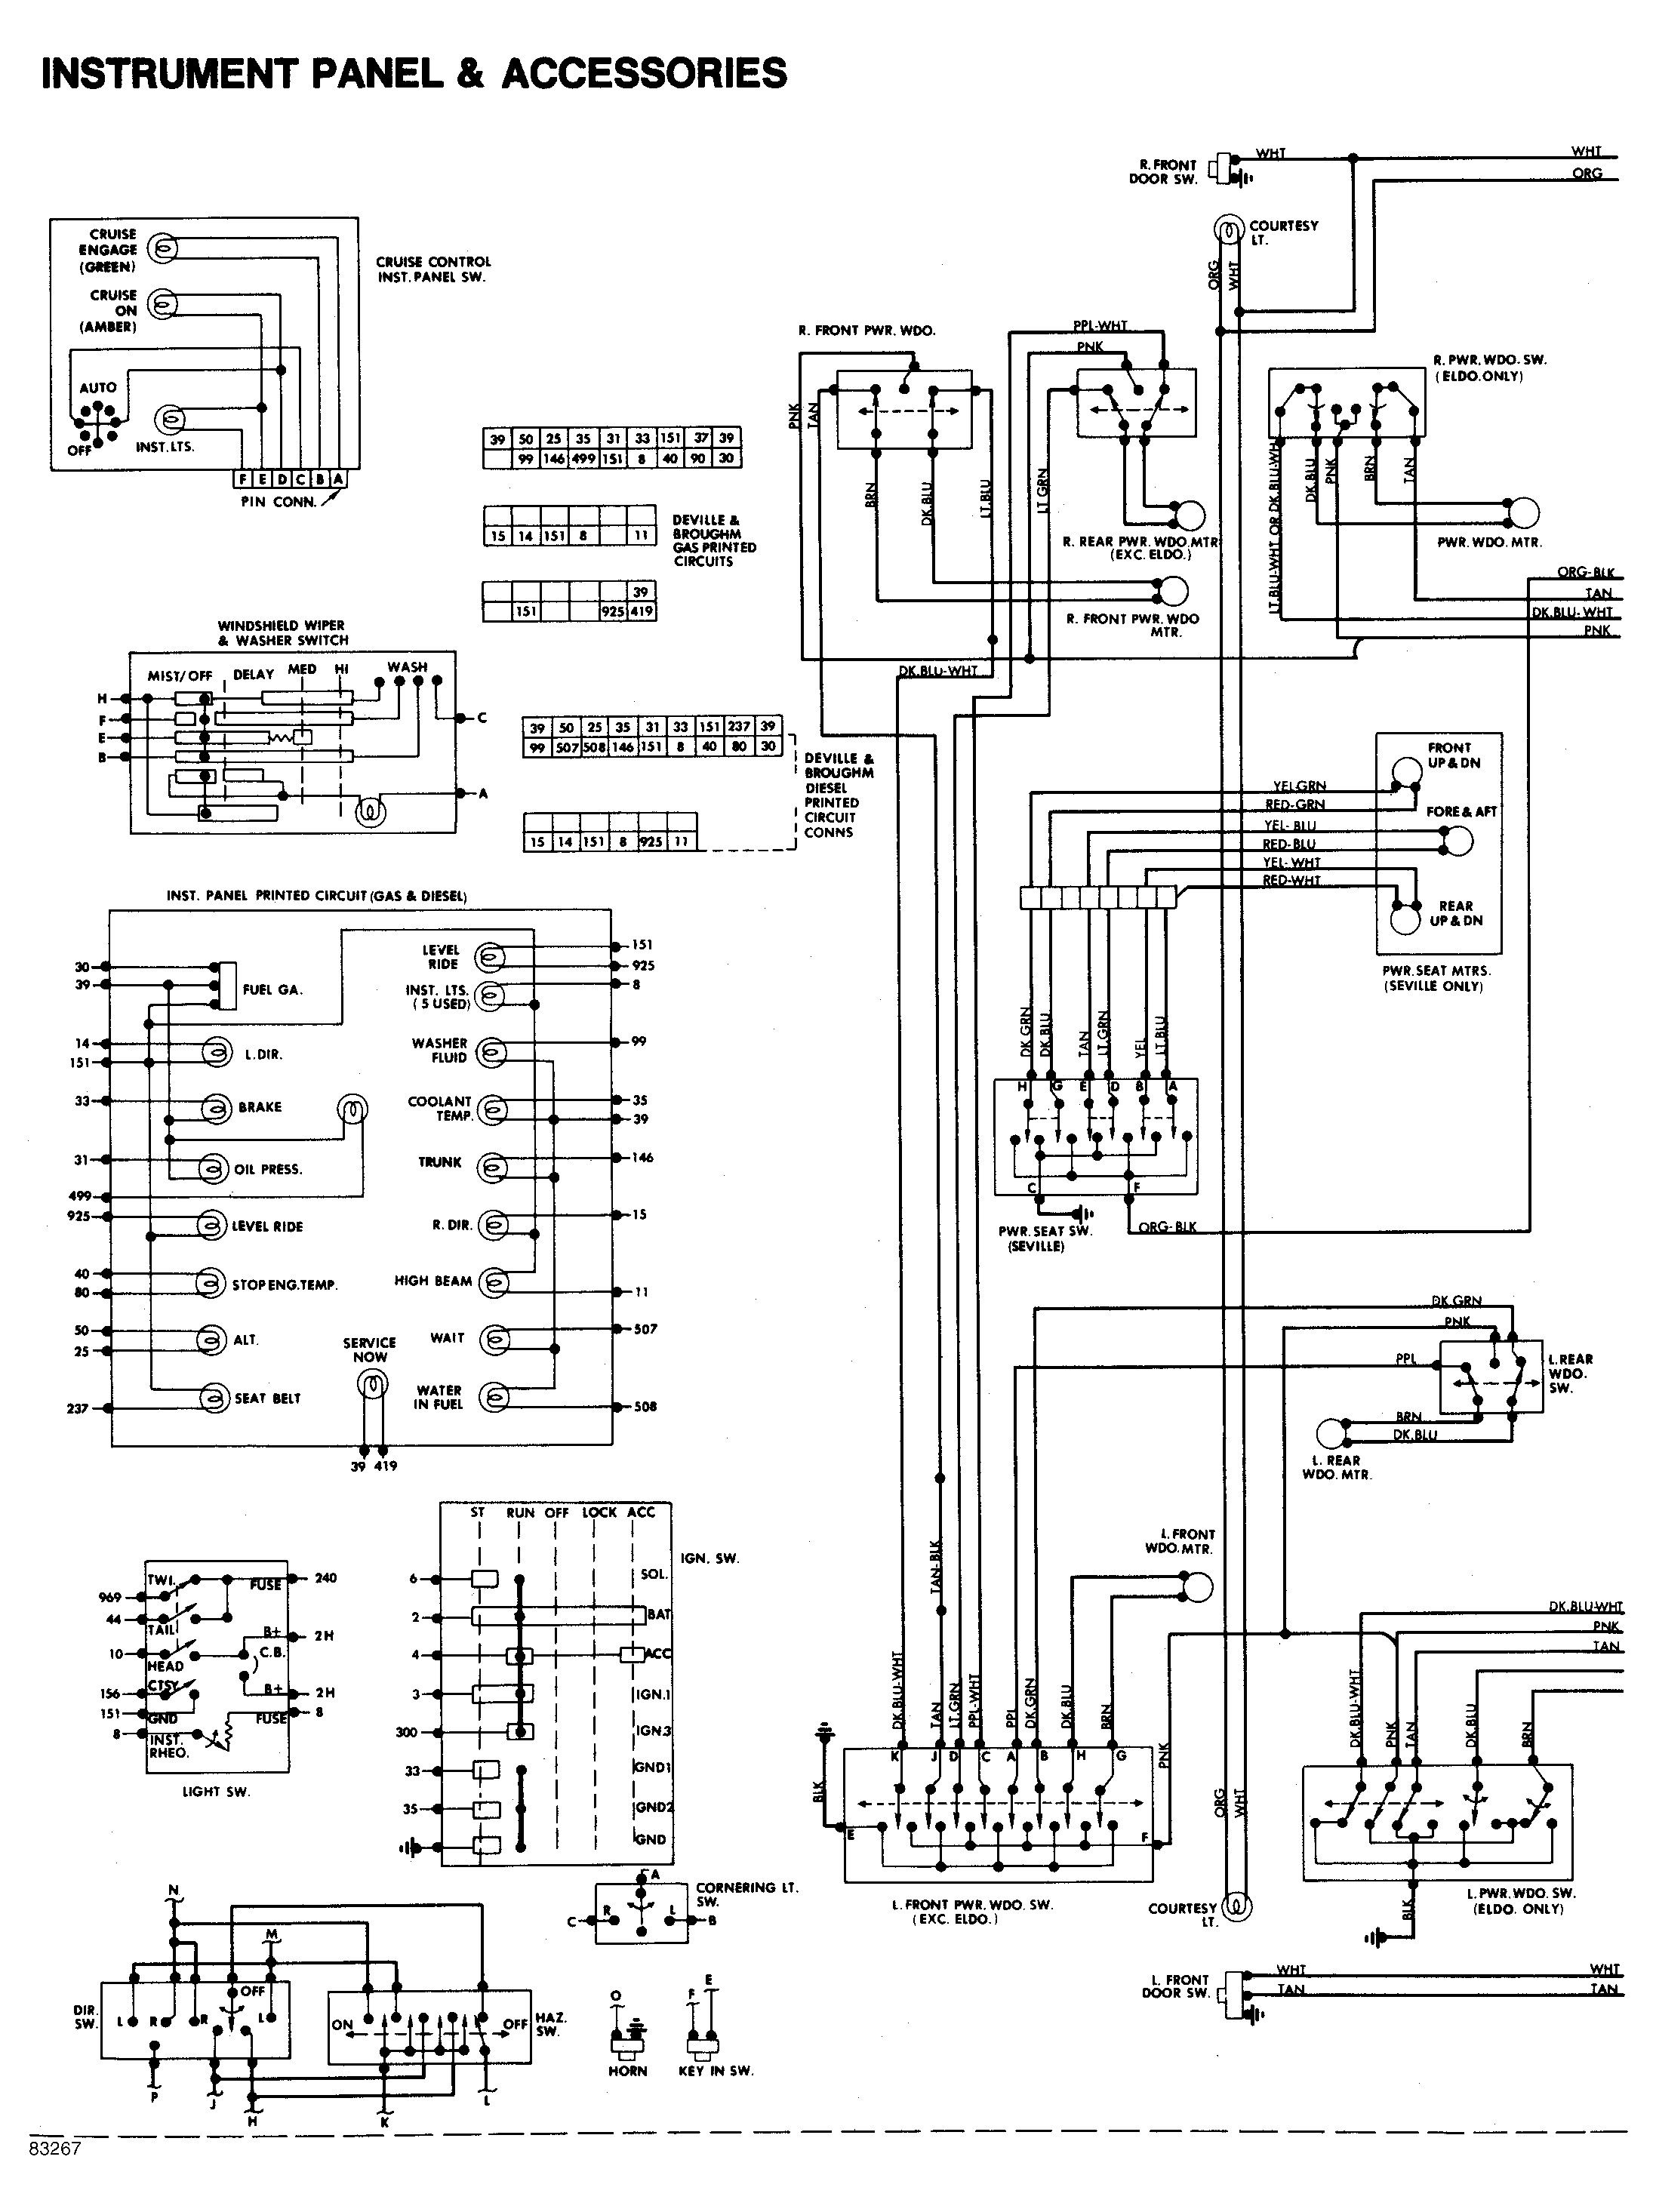 Ih Scout Radio Diagram - Wiring Schematics